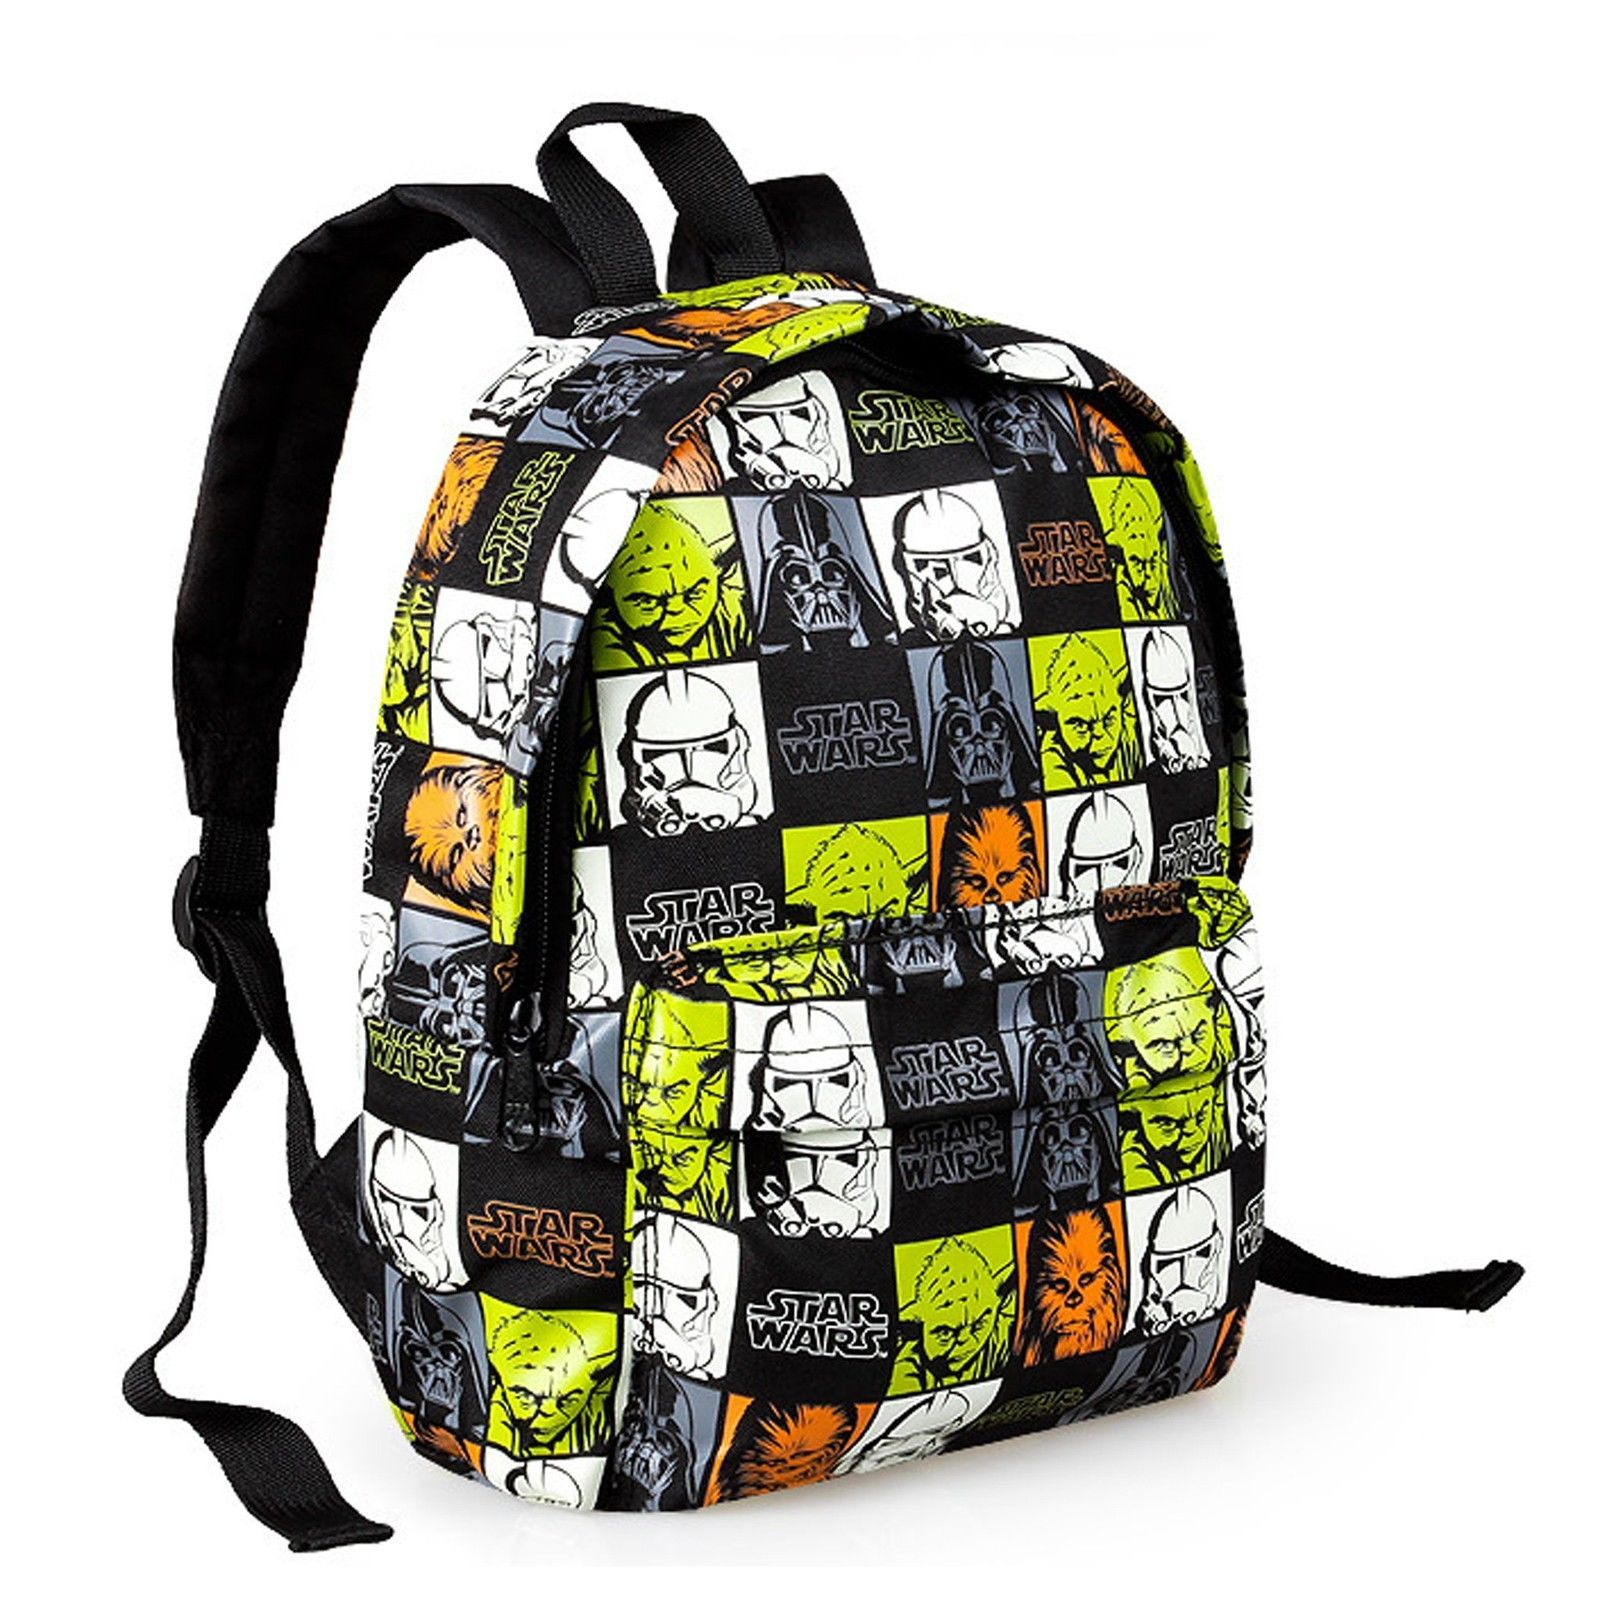 Star Wars Kid Backpack Book School Bag Boys Schoolbag Preschool Toddler Rucksack | eBay